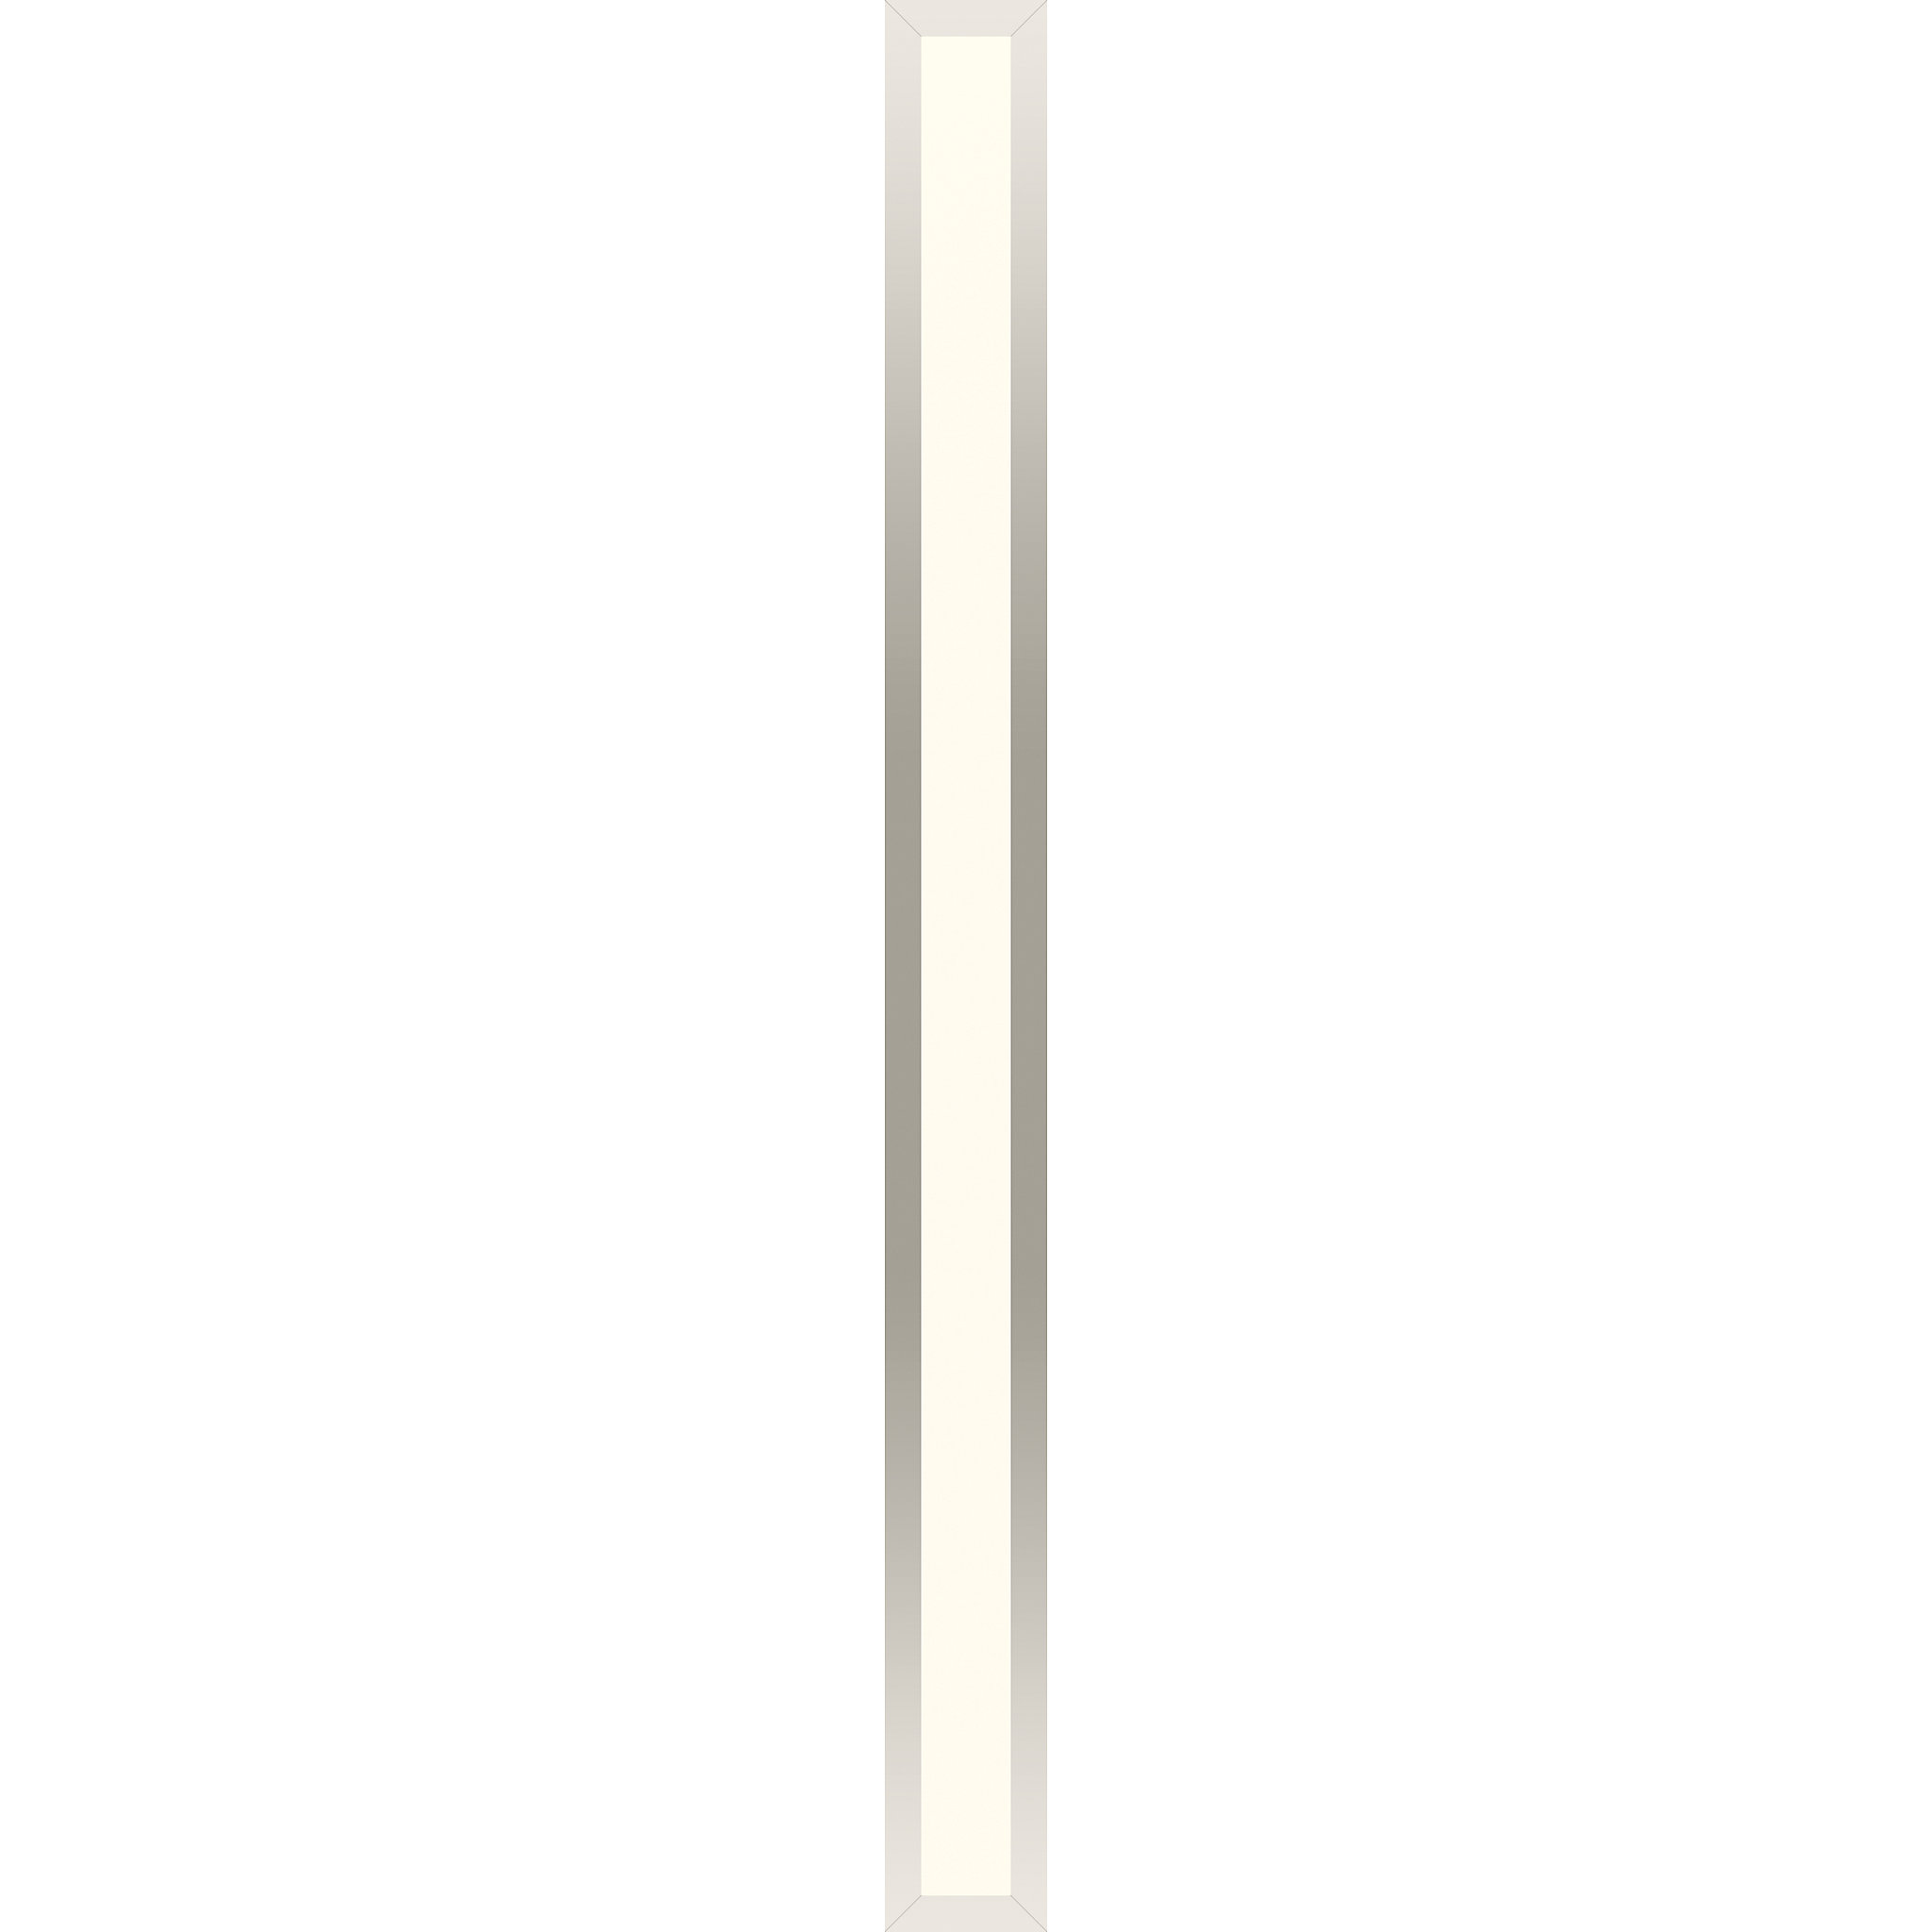 "Robern PL3.540TLSC77DV Profiles Framed Lighting, 3-1/2"" x 40"" x 4-5/8"", Polished Nickel, Variable 2700K to 5600K Temperature (Wa"